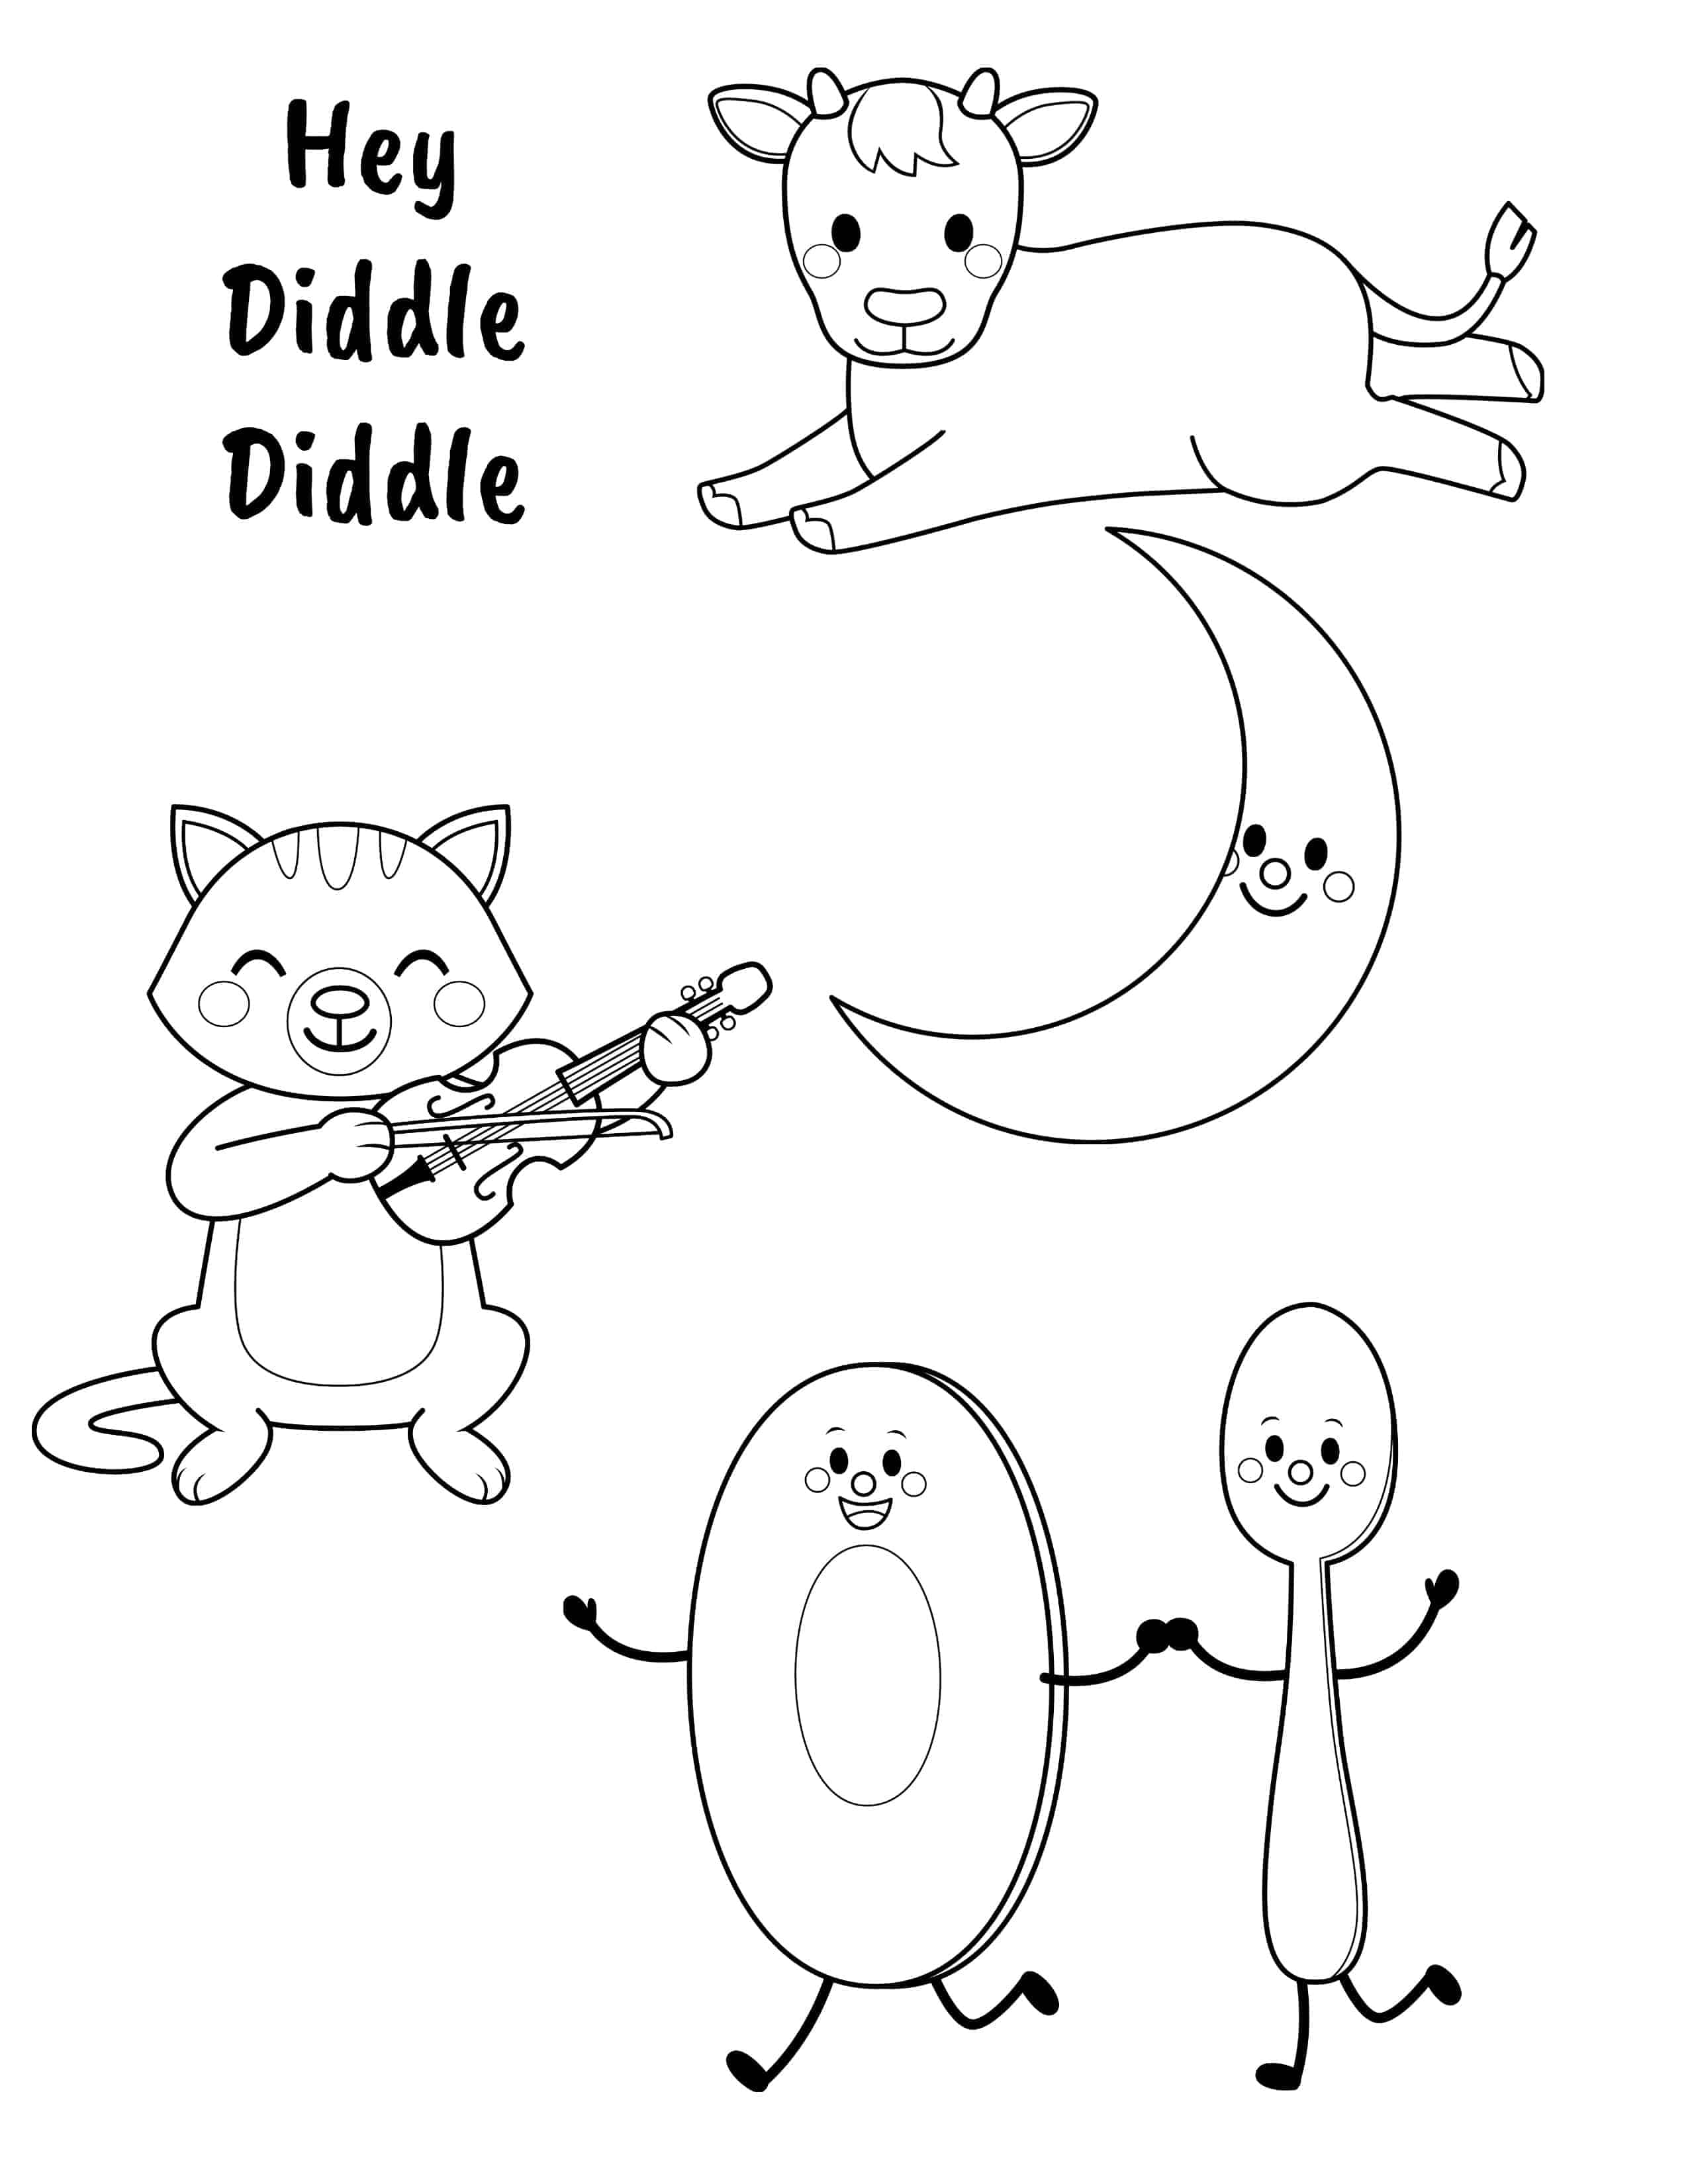 Hey Diddle Coloring Page Sketch Coloring Page